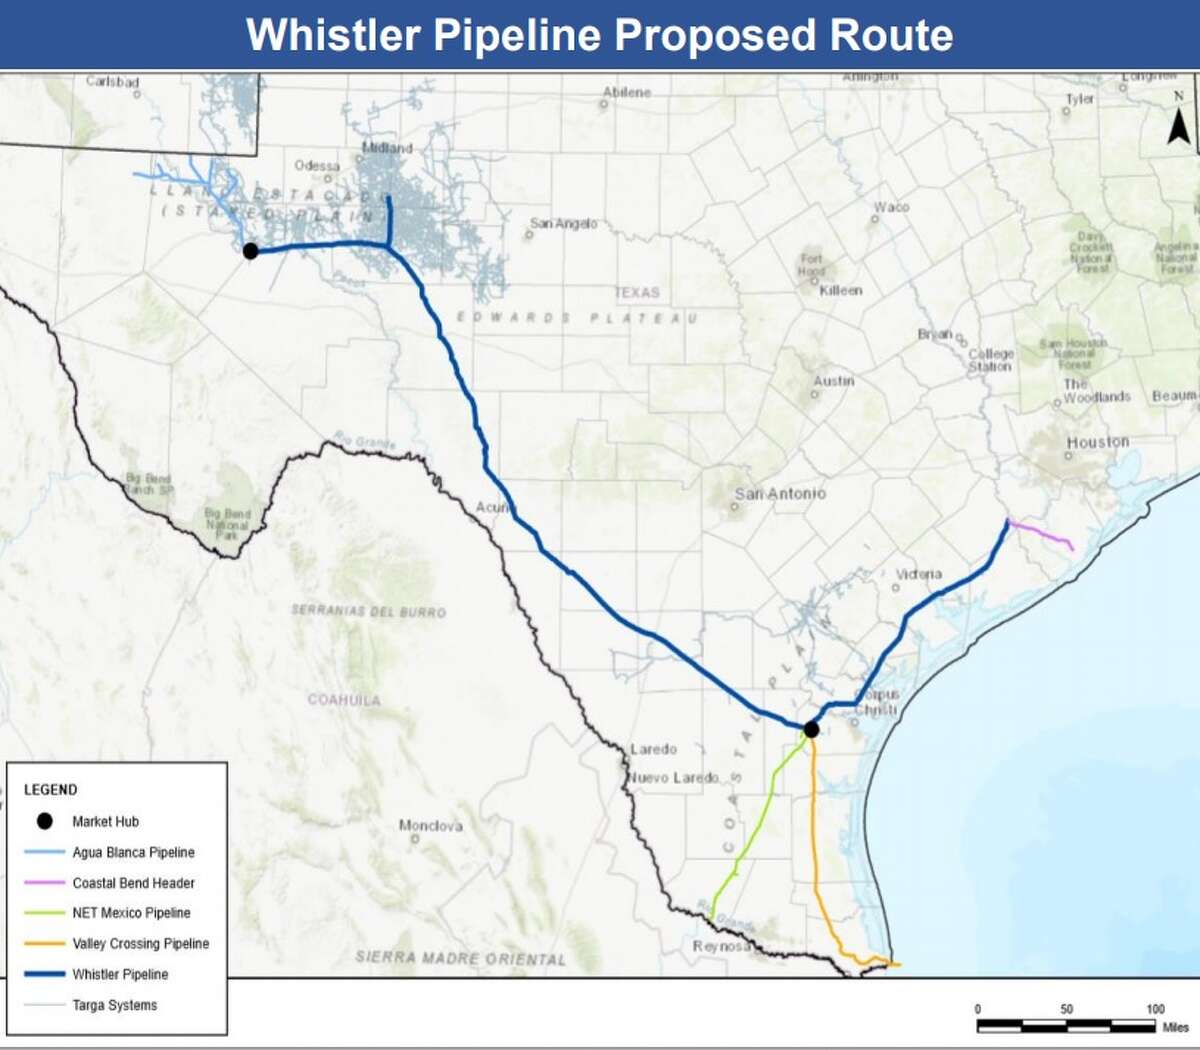 A pipeline project to move natural gas from the Permian Basin of West Texas to Corpus Christi is moving forward with three public meetings in Odessa, Uvalde and Alice.